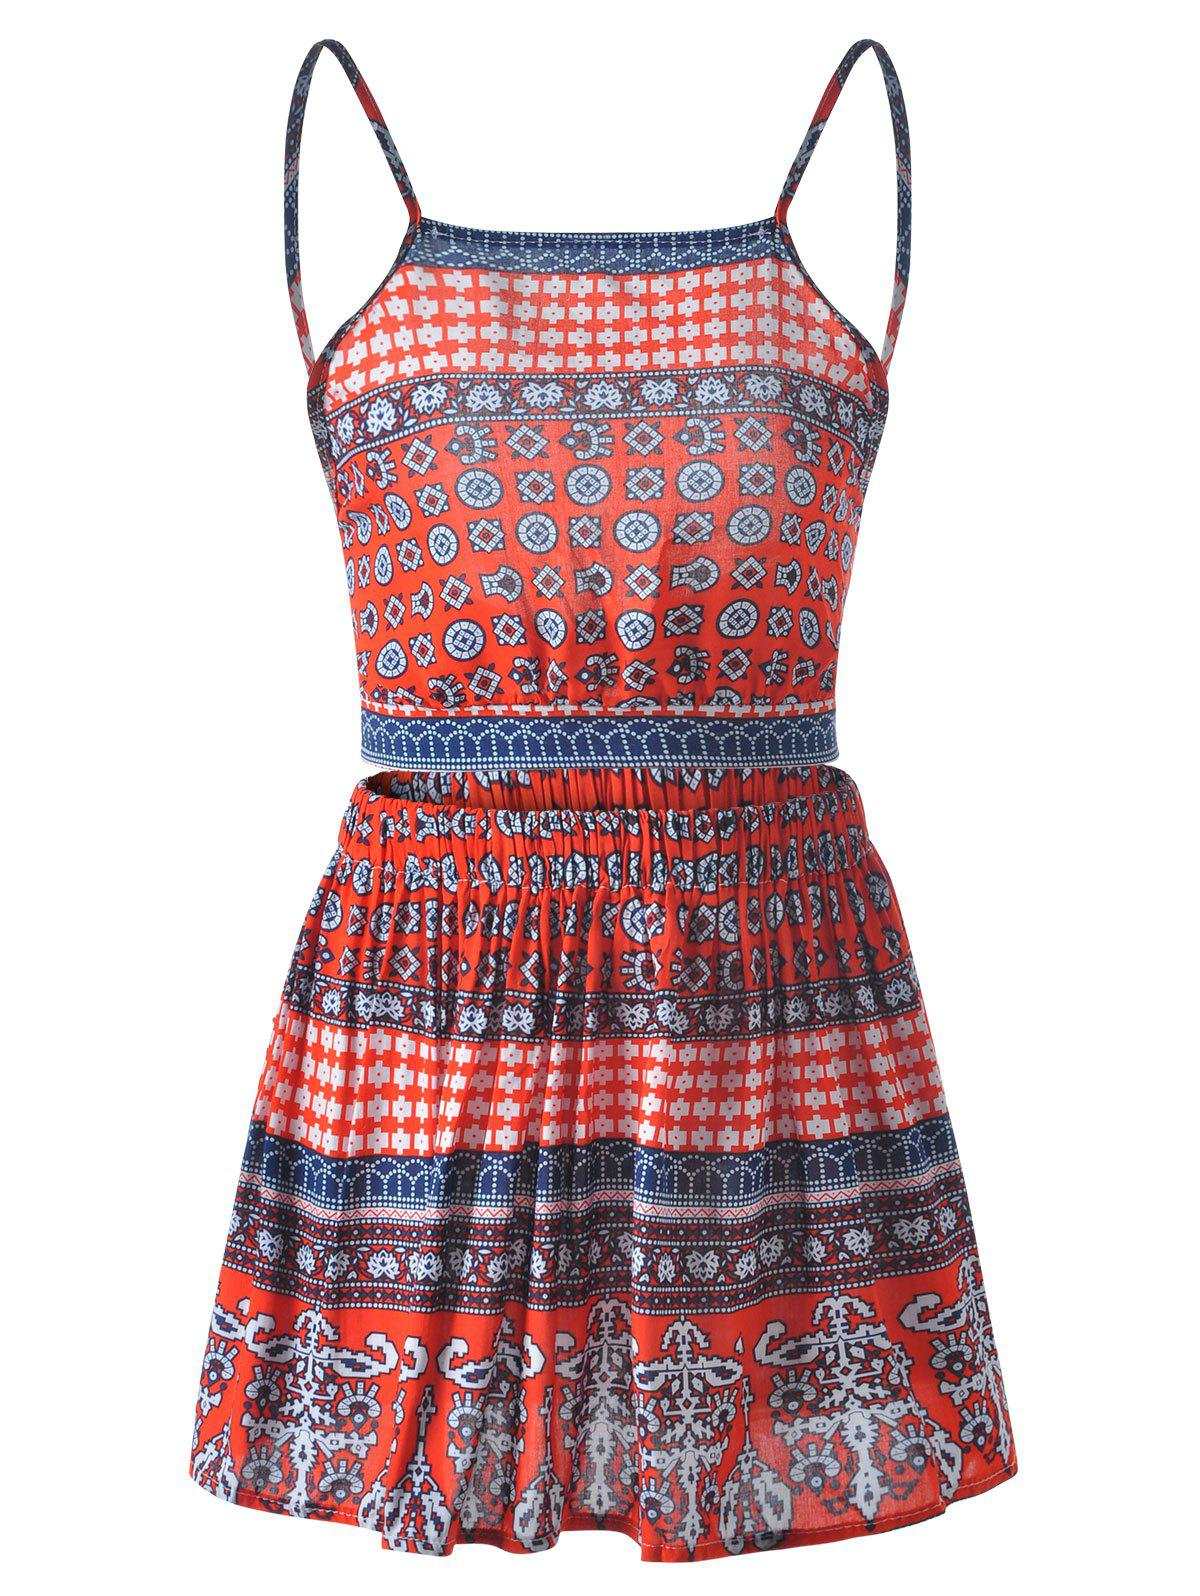 Spaghetti Strap Backless Top + Cinched Waist Printing Short Skirt Twinset For Women - RED M